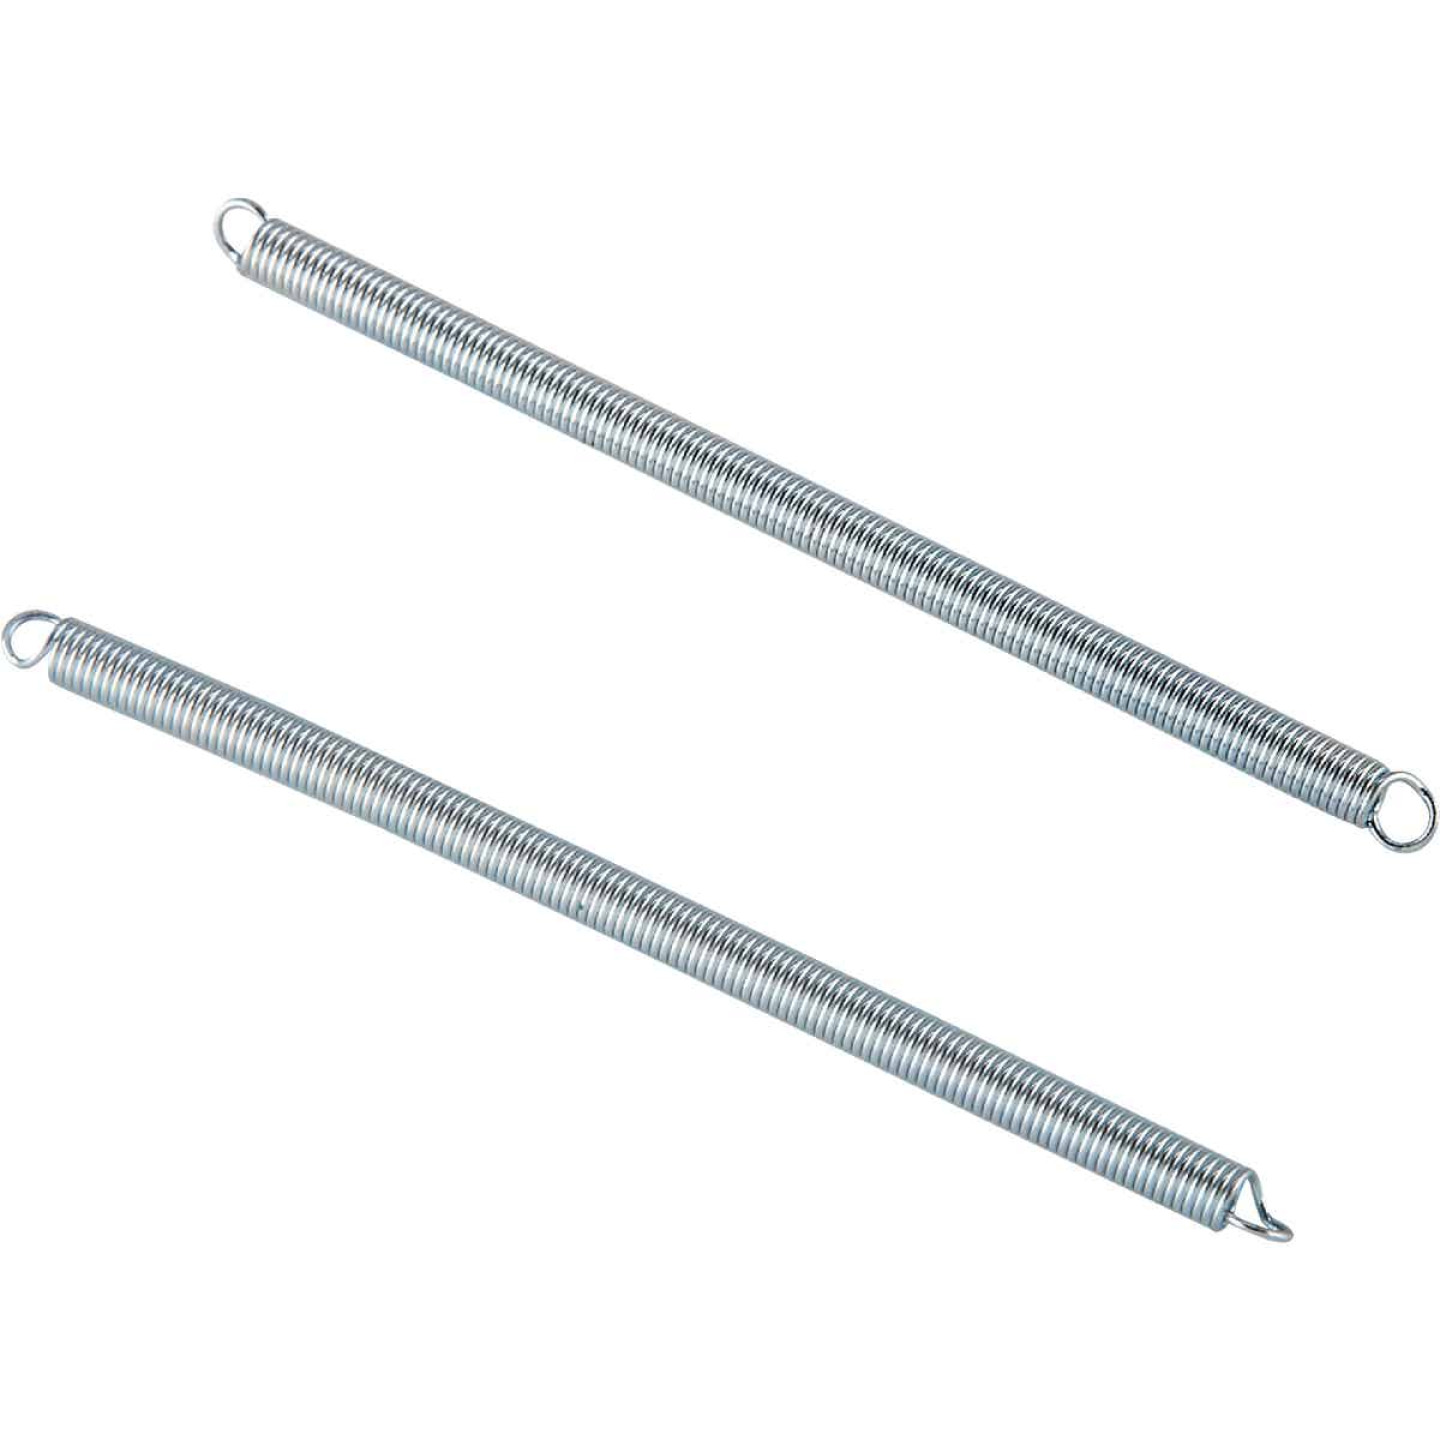 Century Spring 2 In. x 7/16 In. Extension Spring (2 Count) Image 1